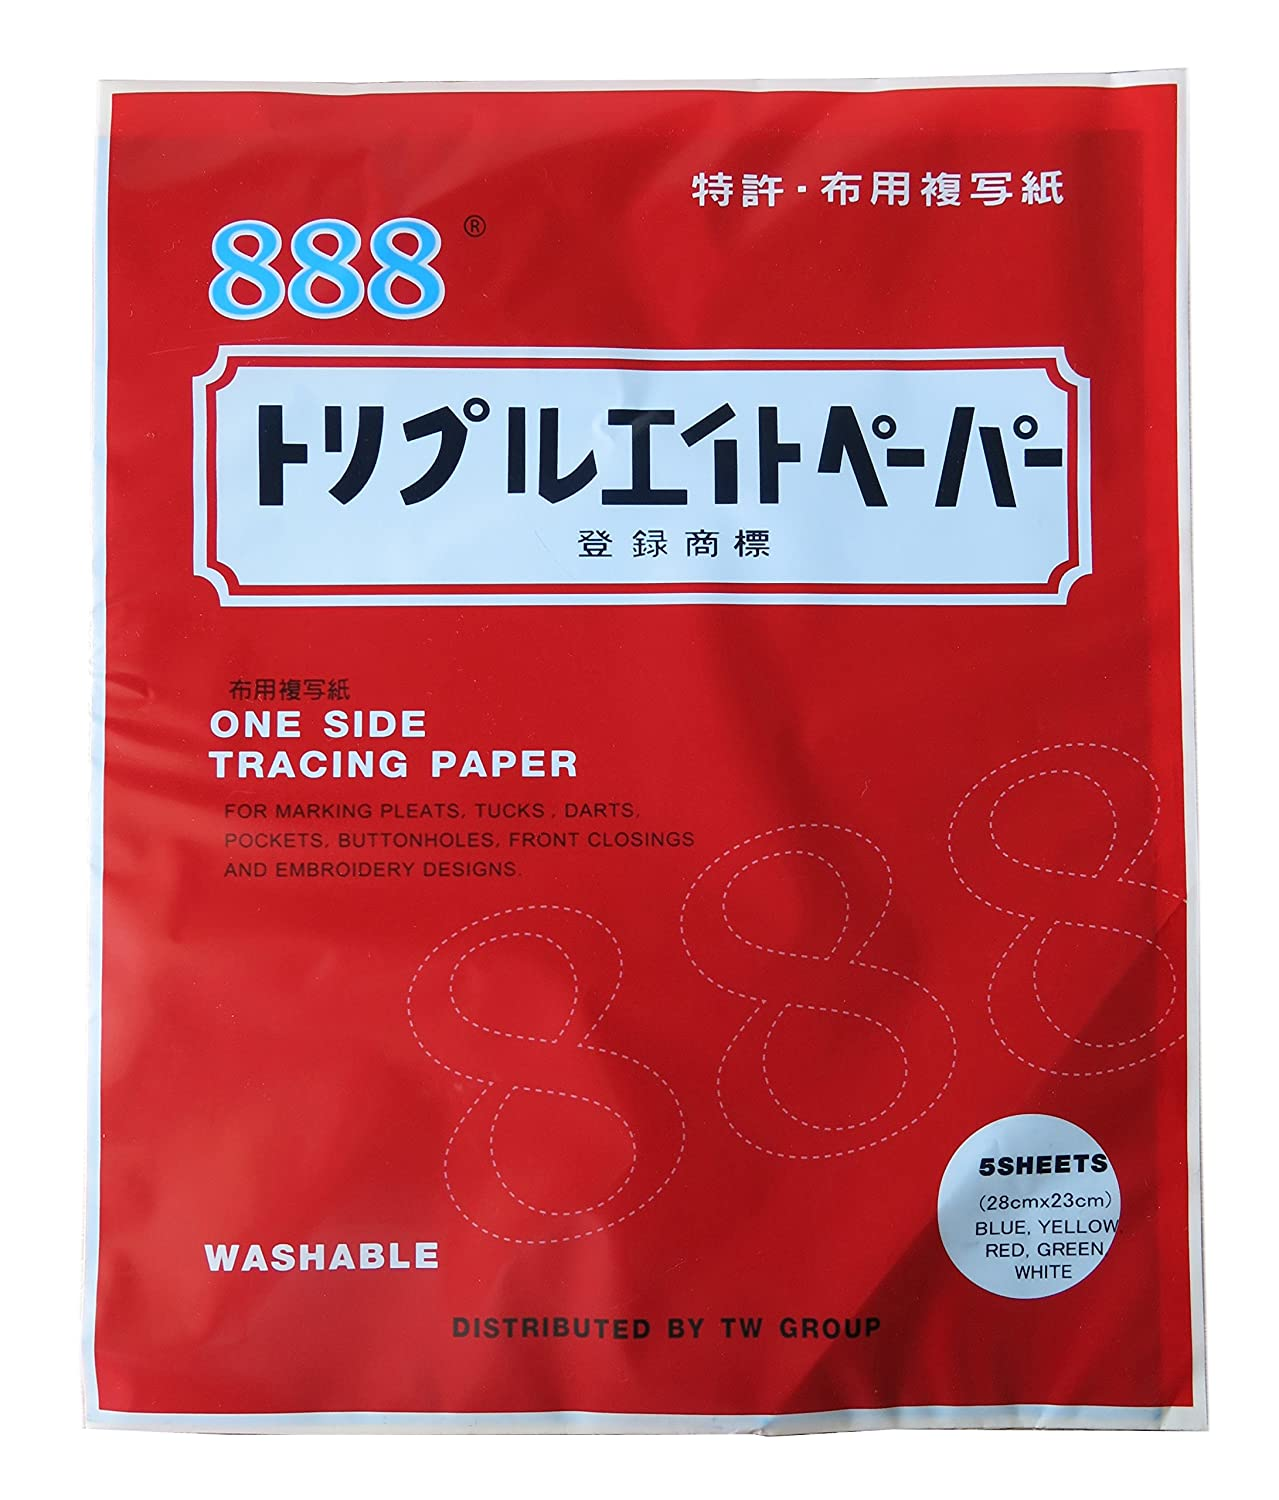 PH PandaHall 10 Sheets 5-Color Transfer Tracing Paper Transfer Copier Paper Sheets Printer Marking Sewing Fabric Craft Sewing DIY Pattern Making Paper